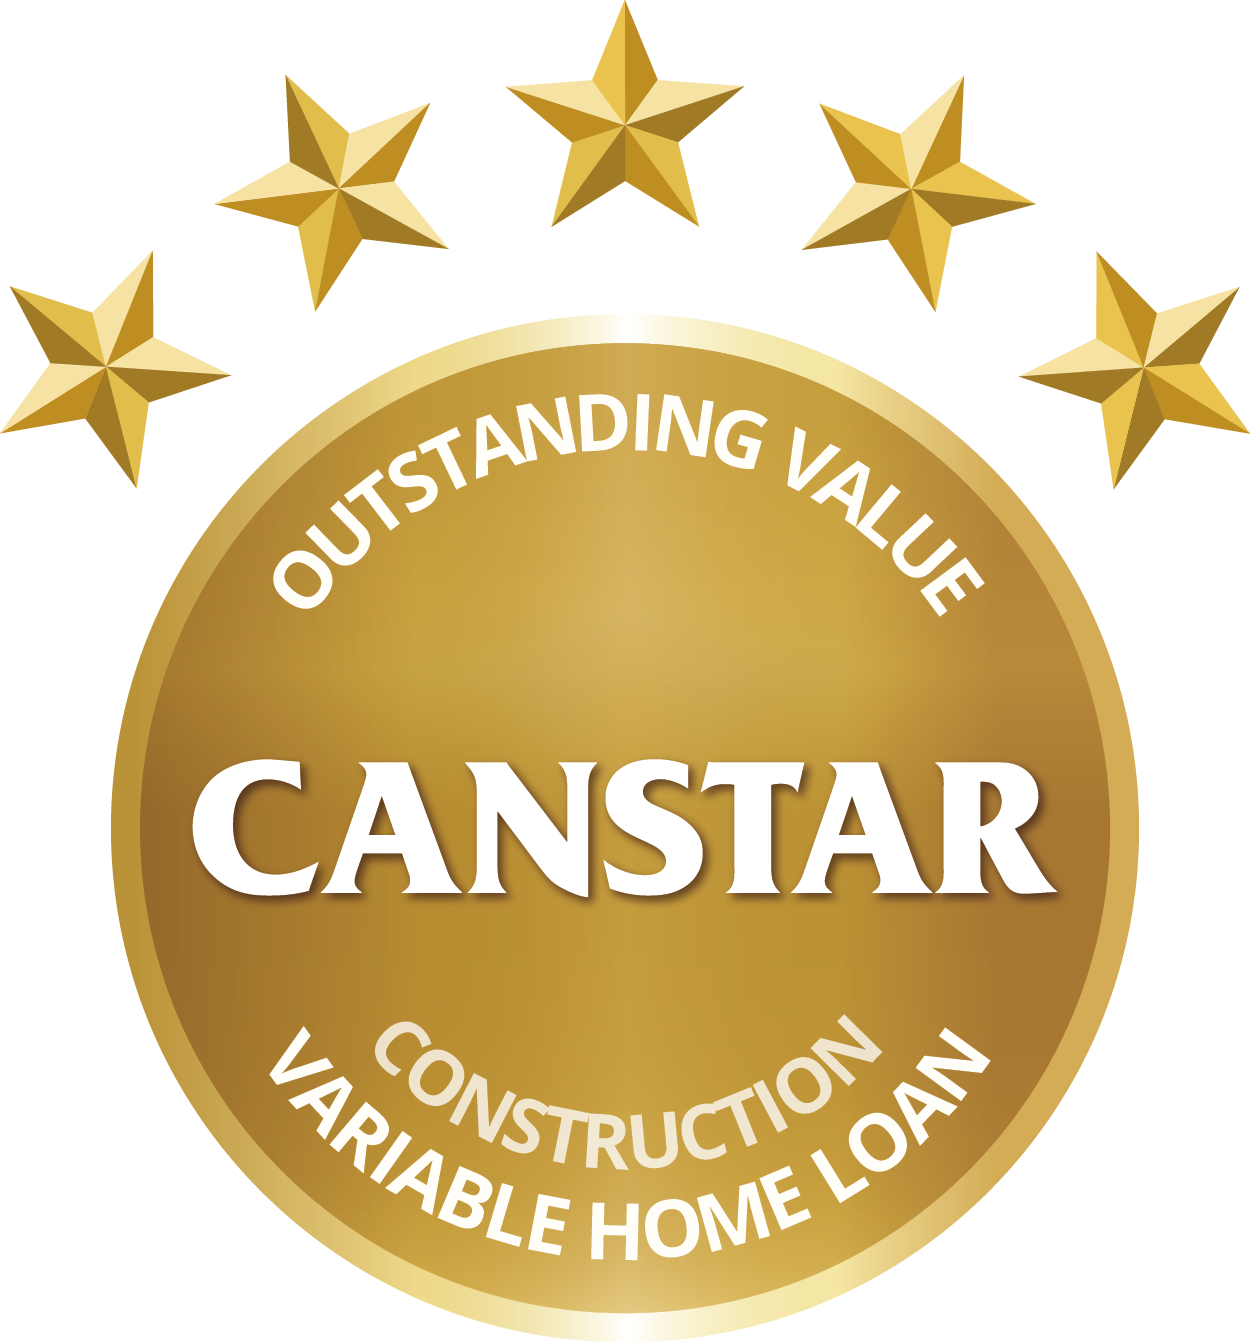 Canstar Construction